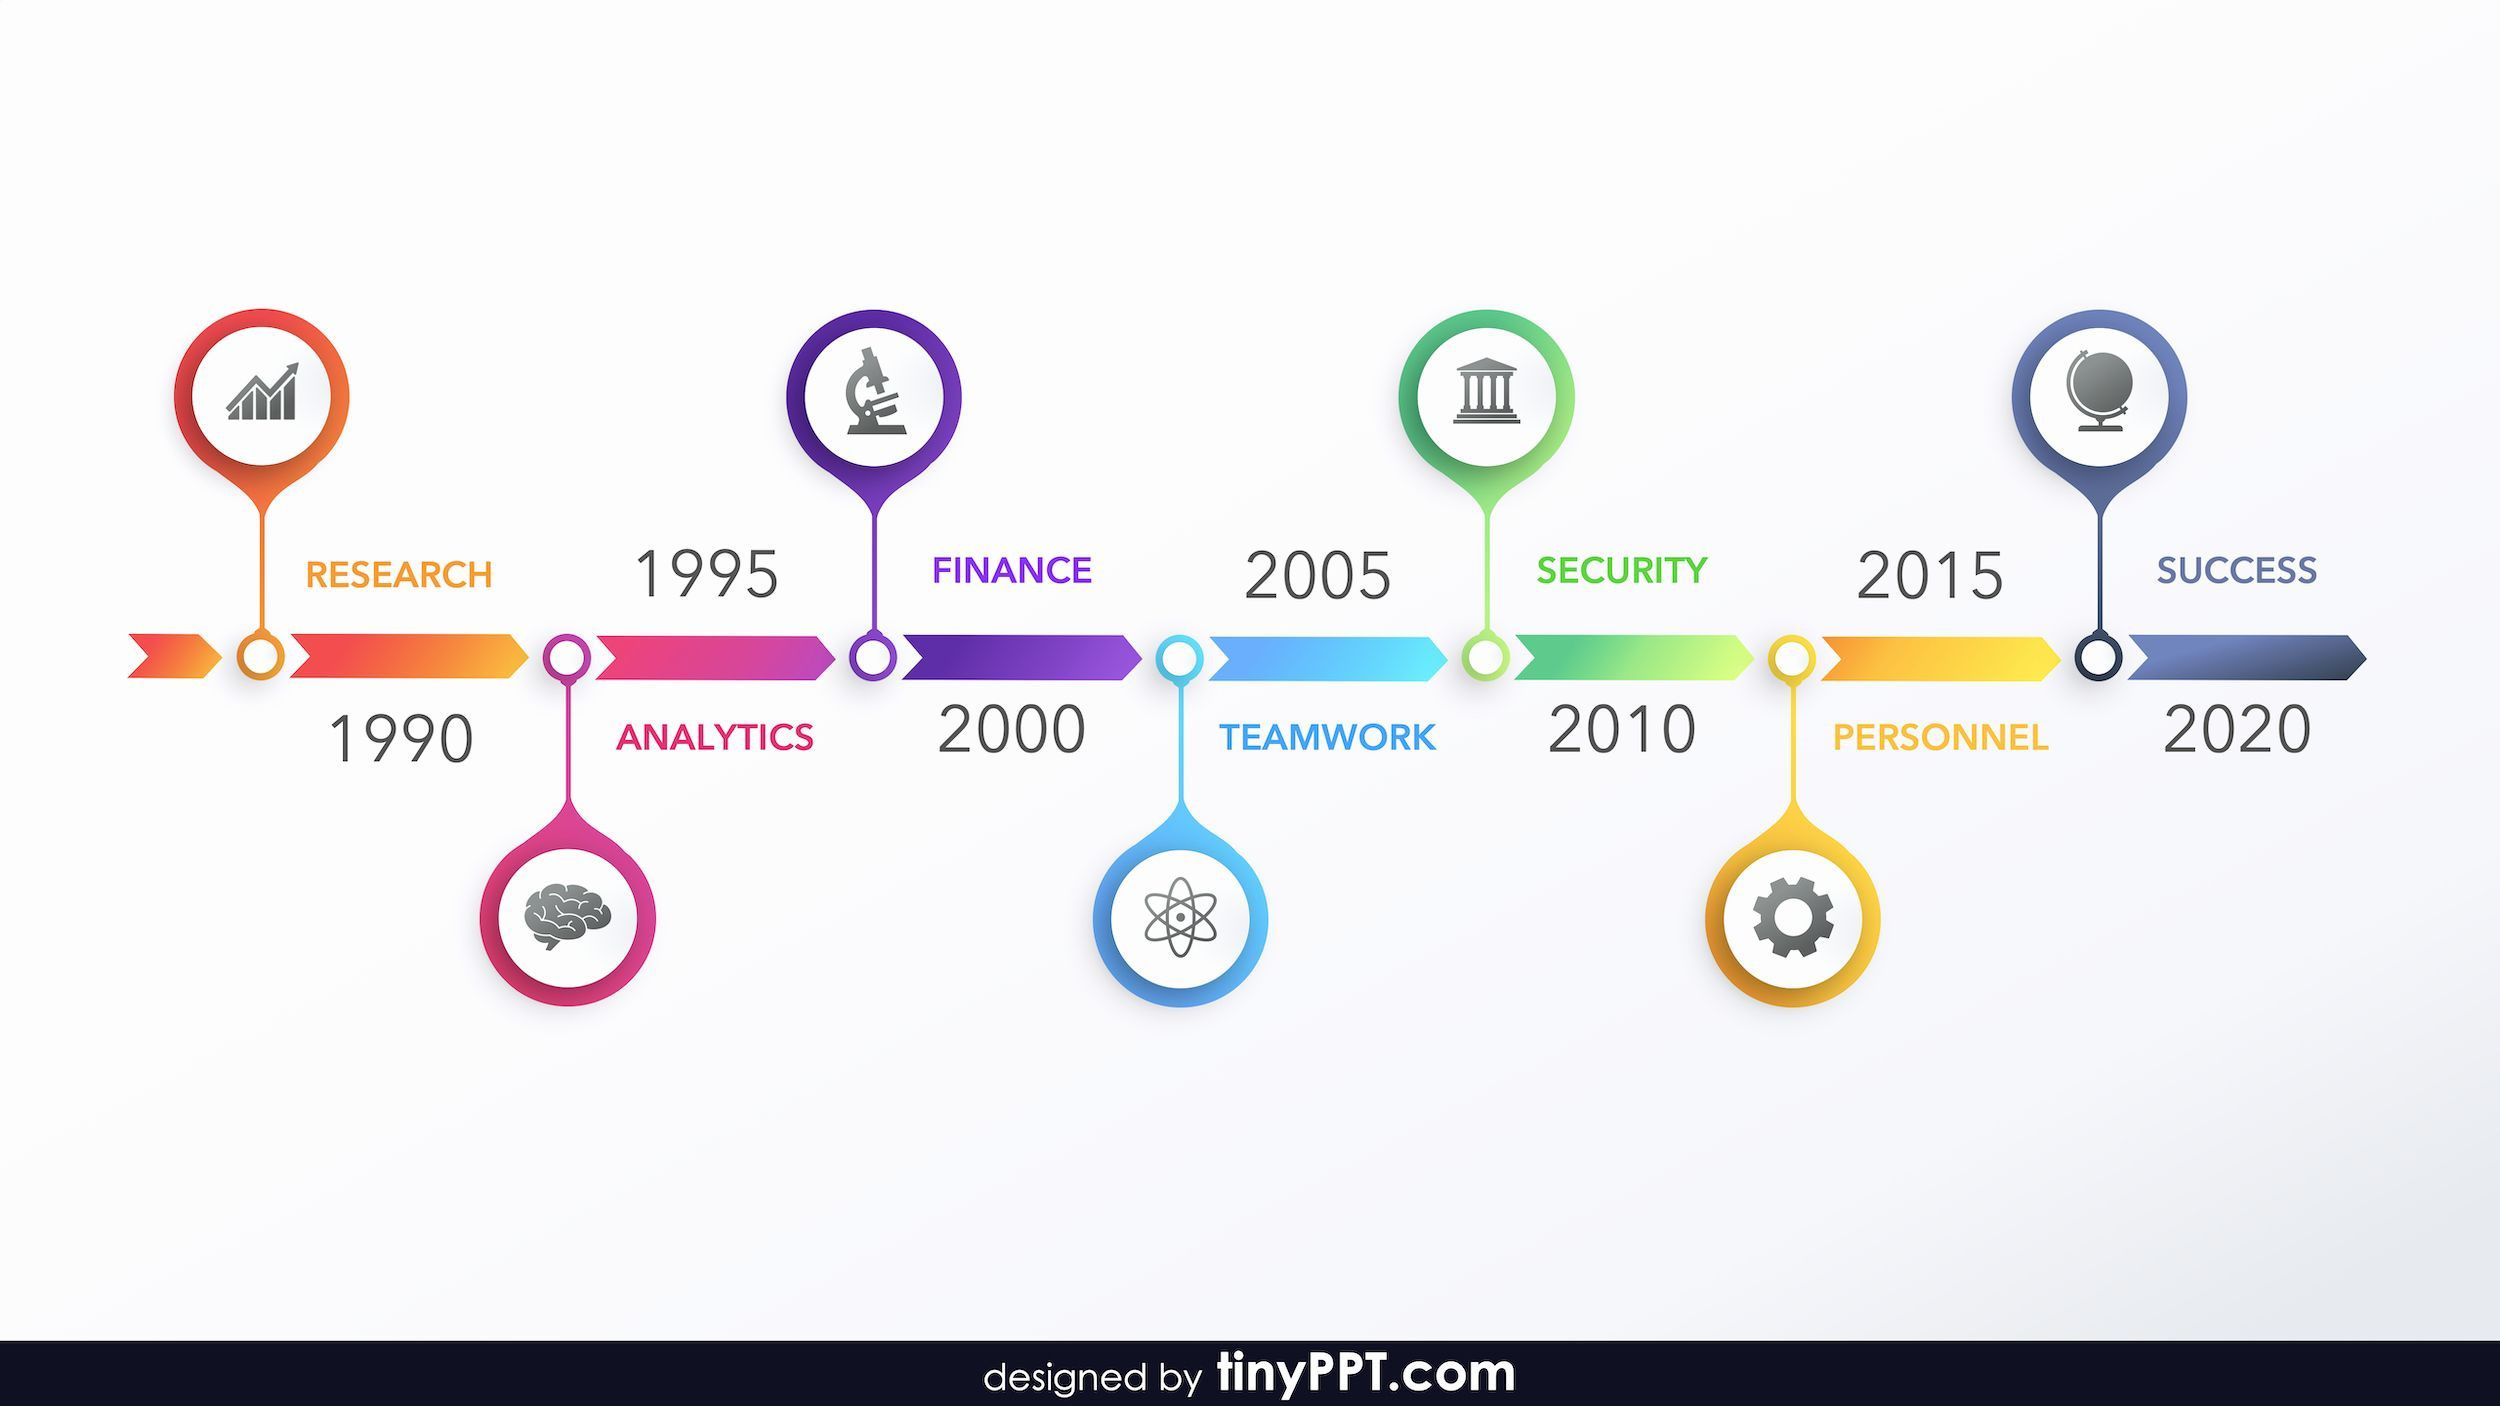 000 Fascinating Project Timeline Template Ppt Free Inspiration  Simple Powerpoint DownloadFull